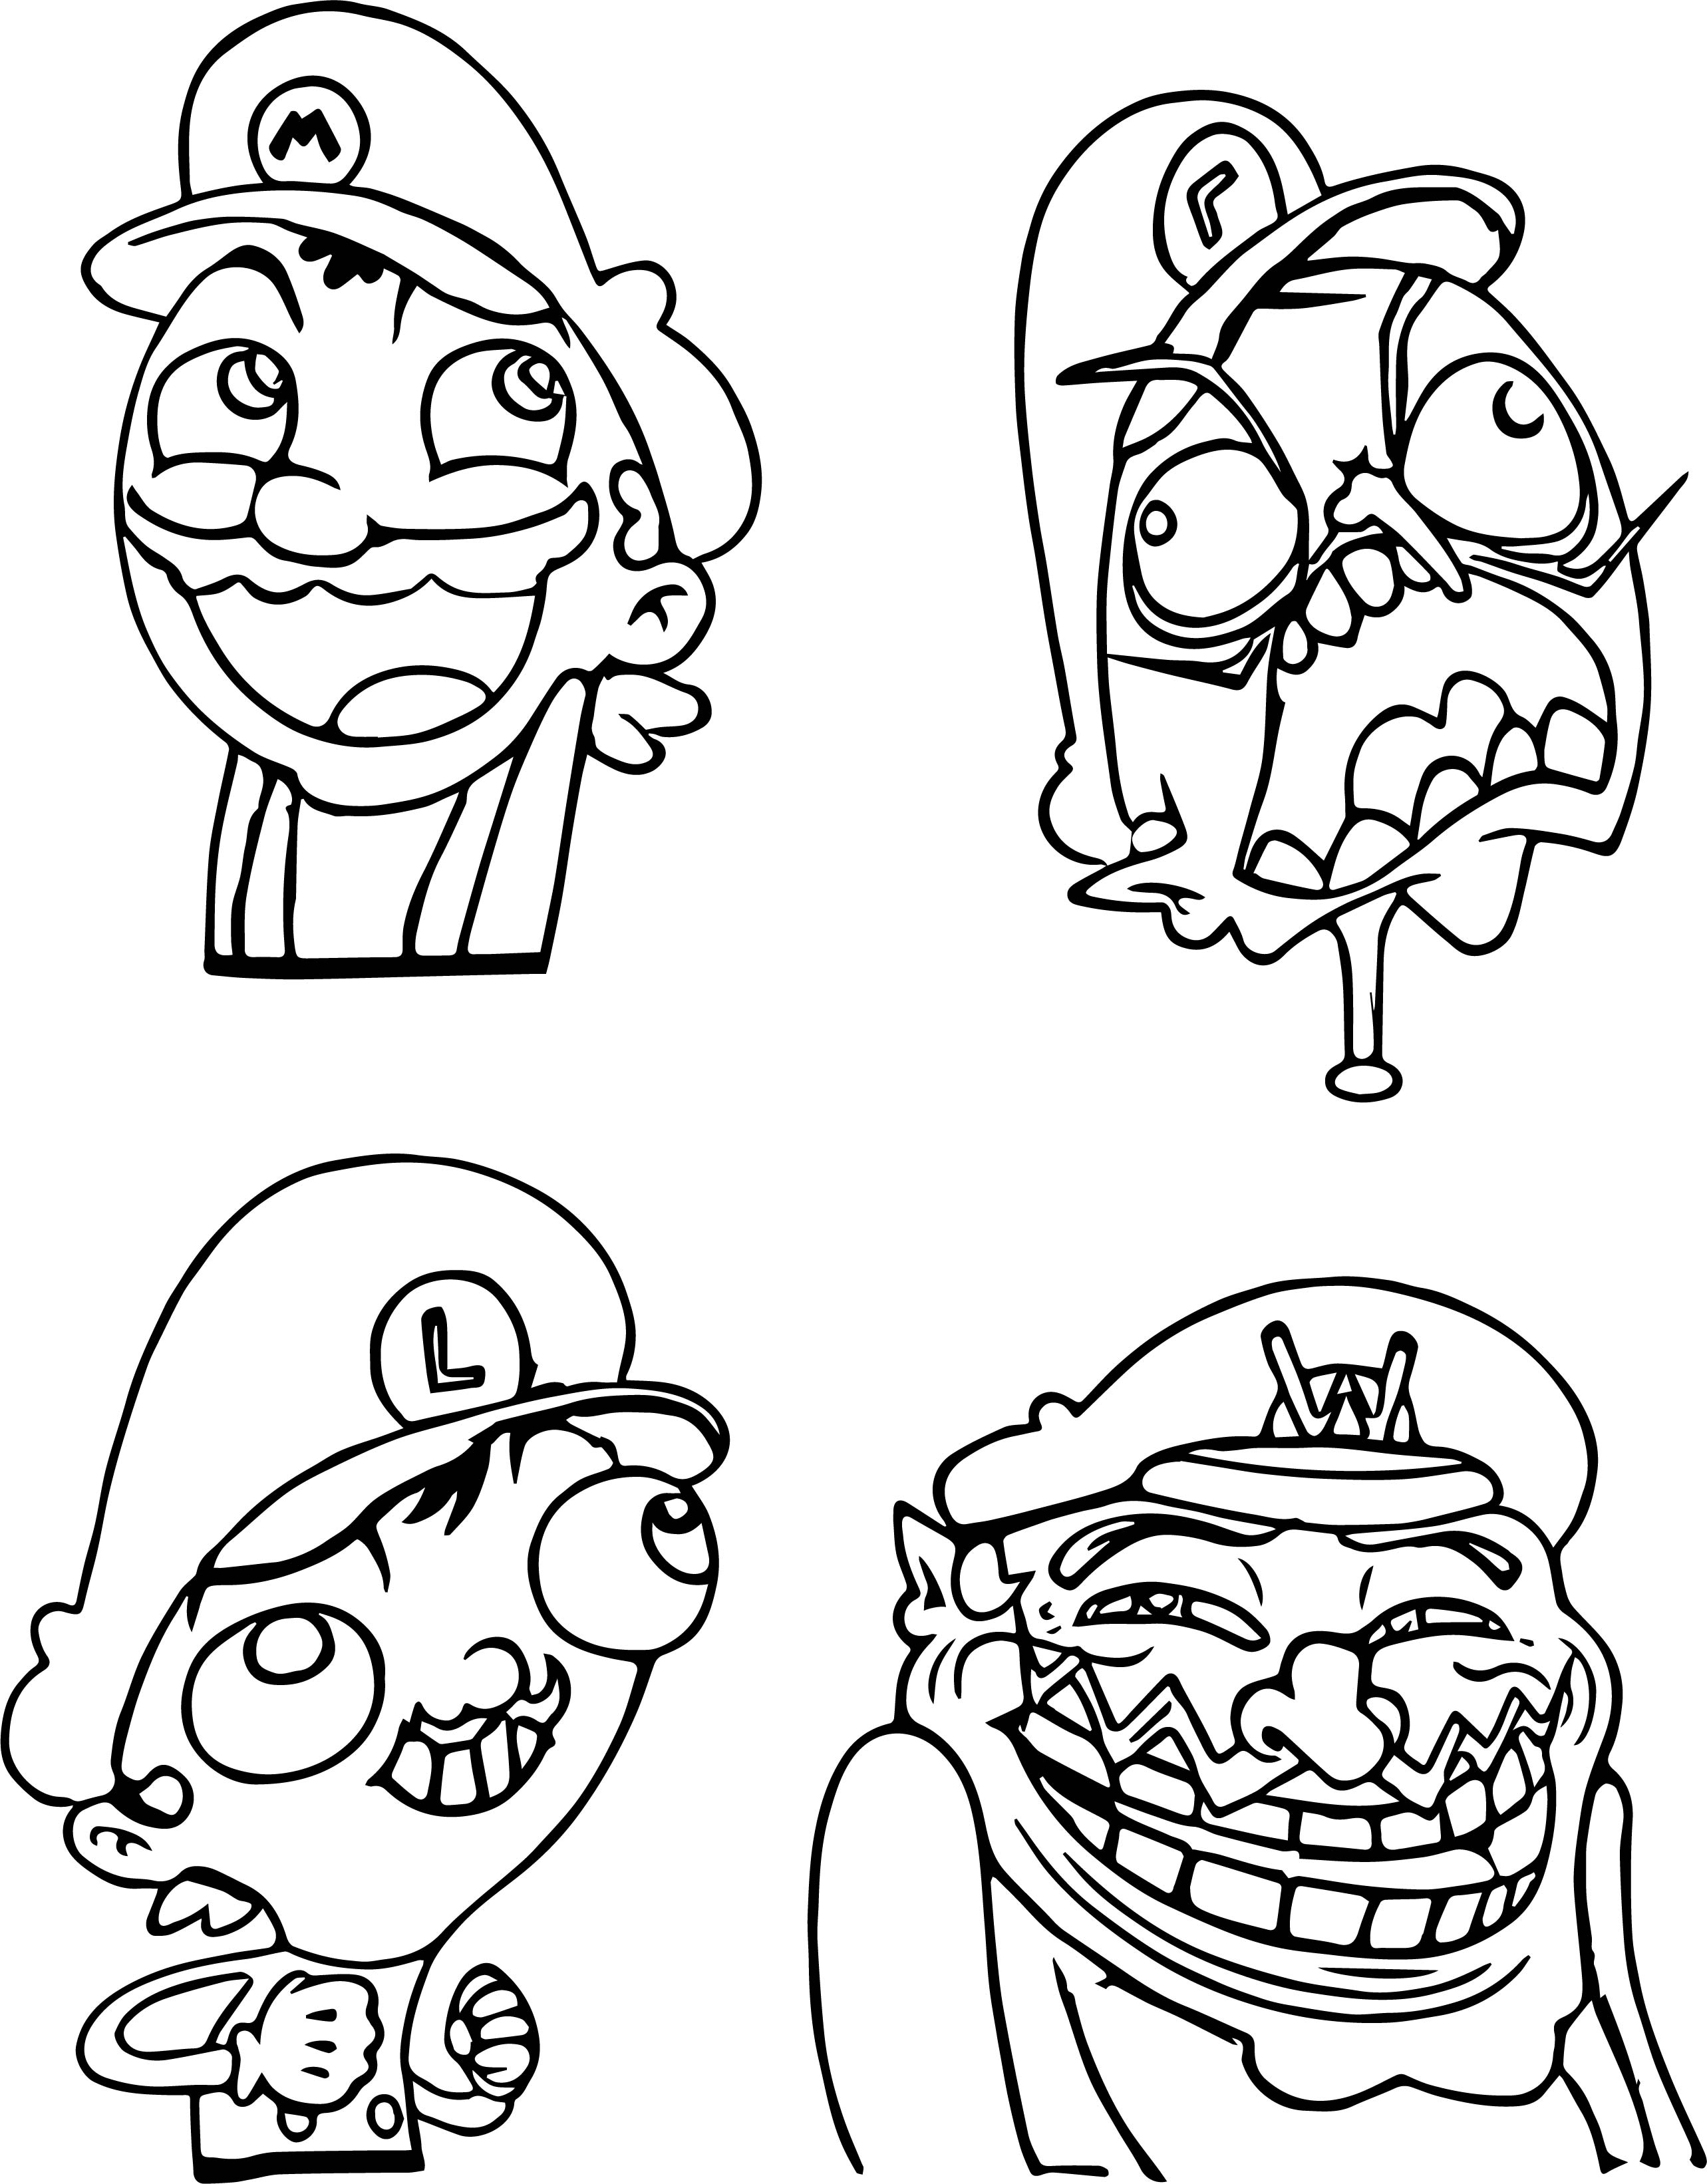 comic mario nintendo coloring pages - Nintendo Coloring Pages